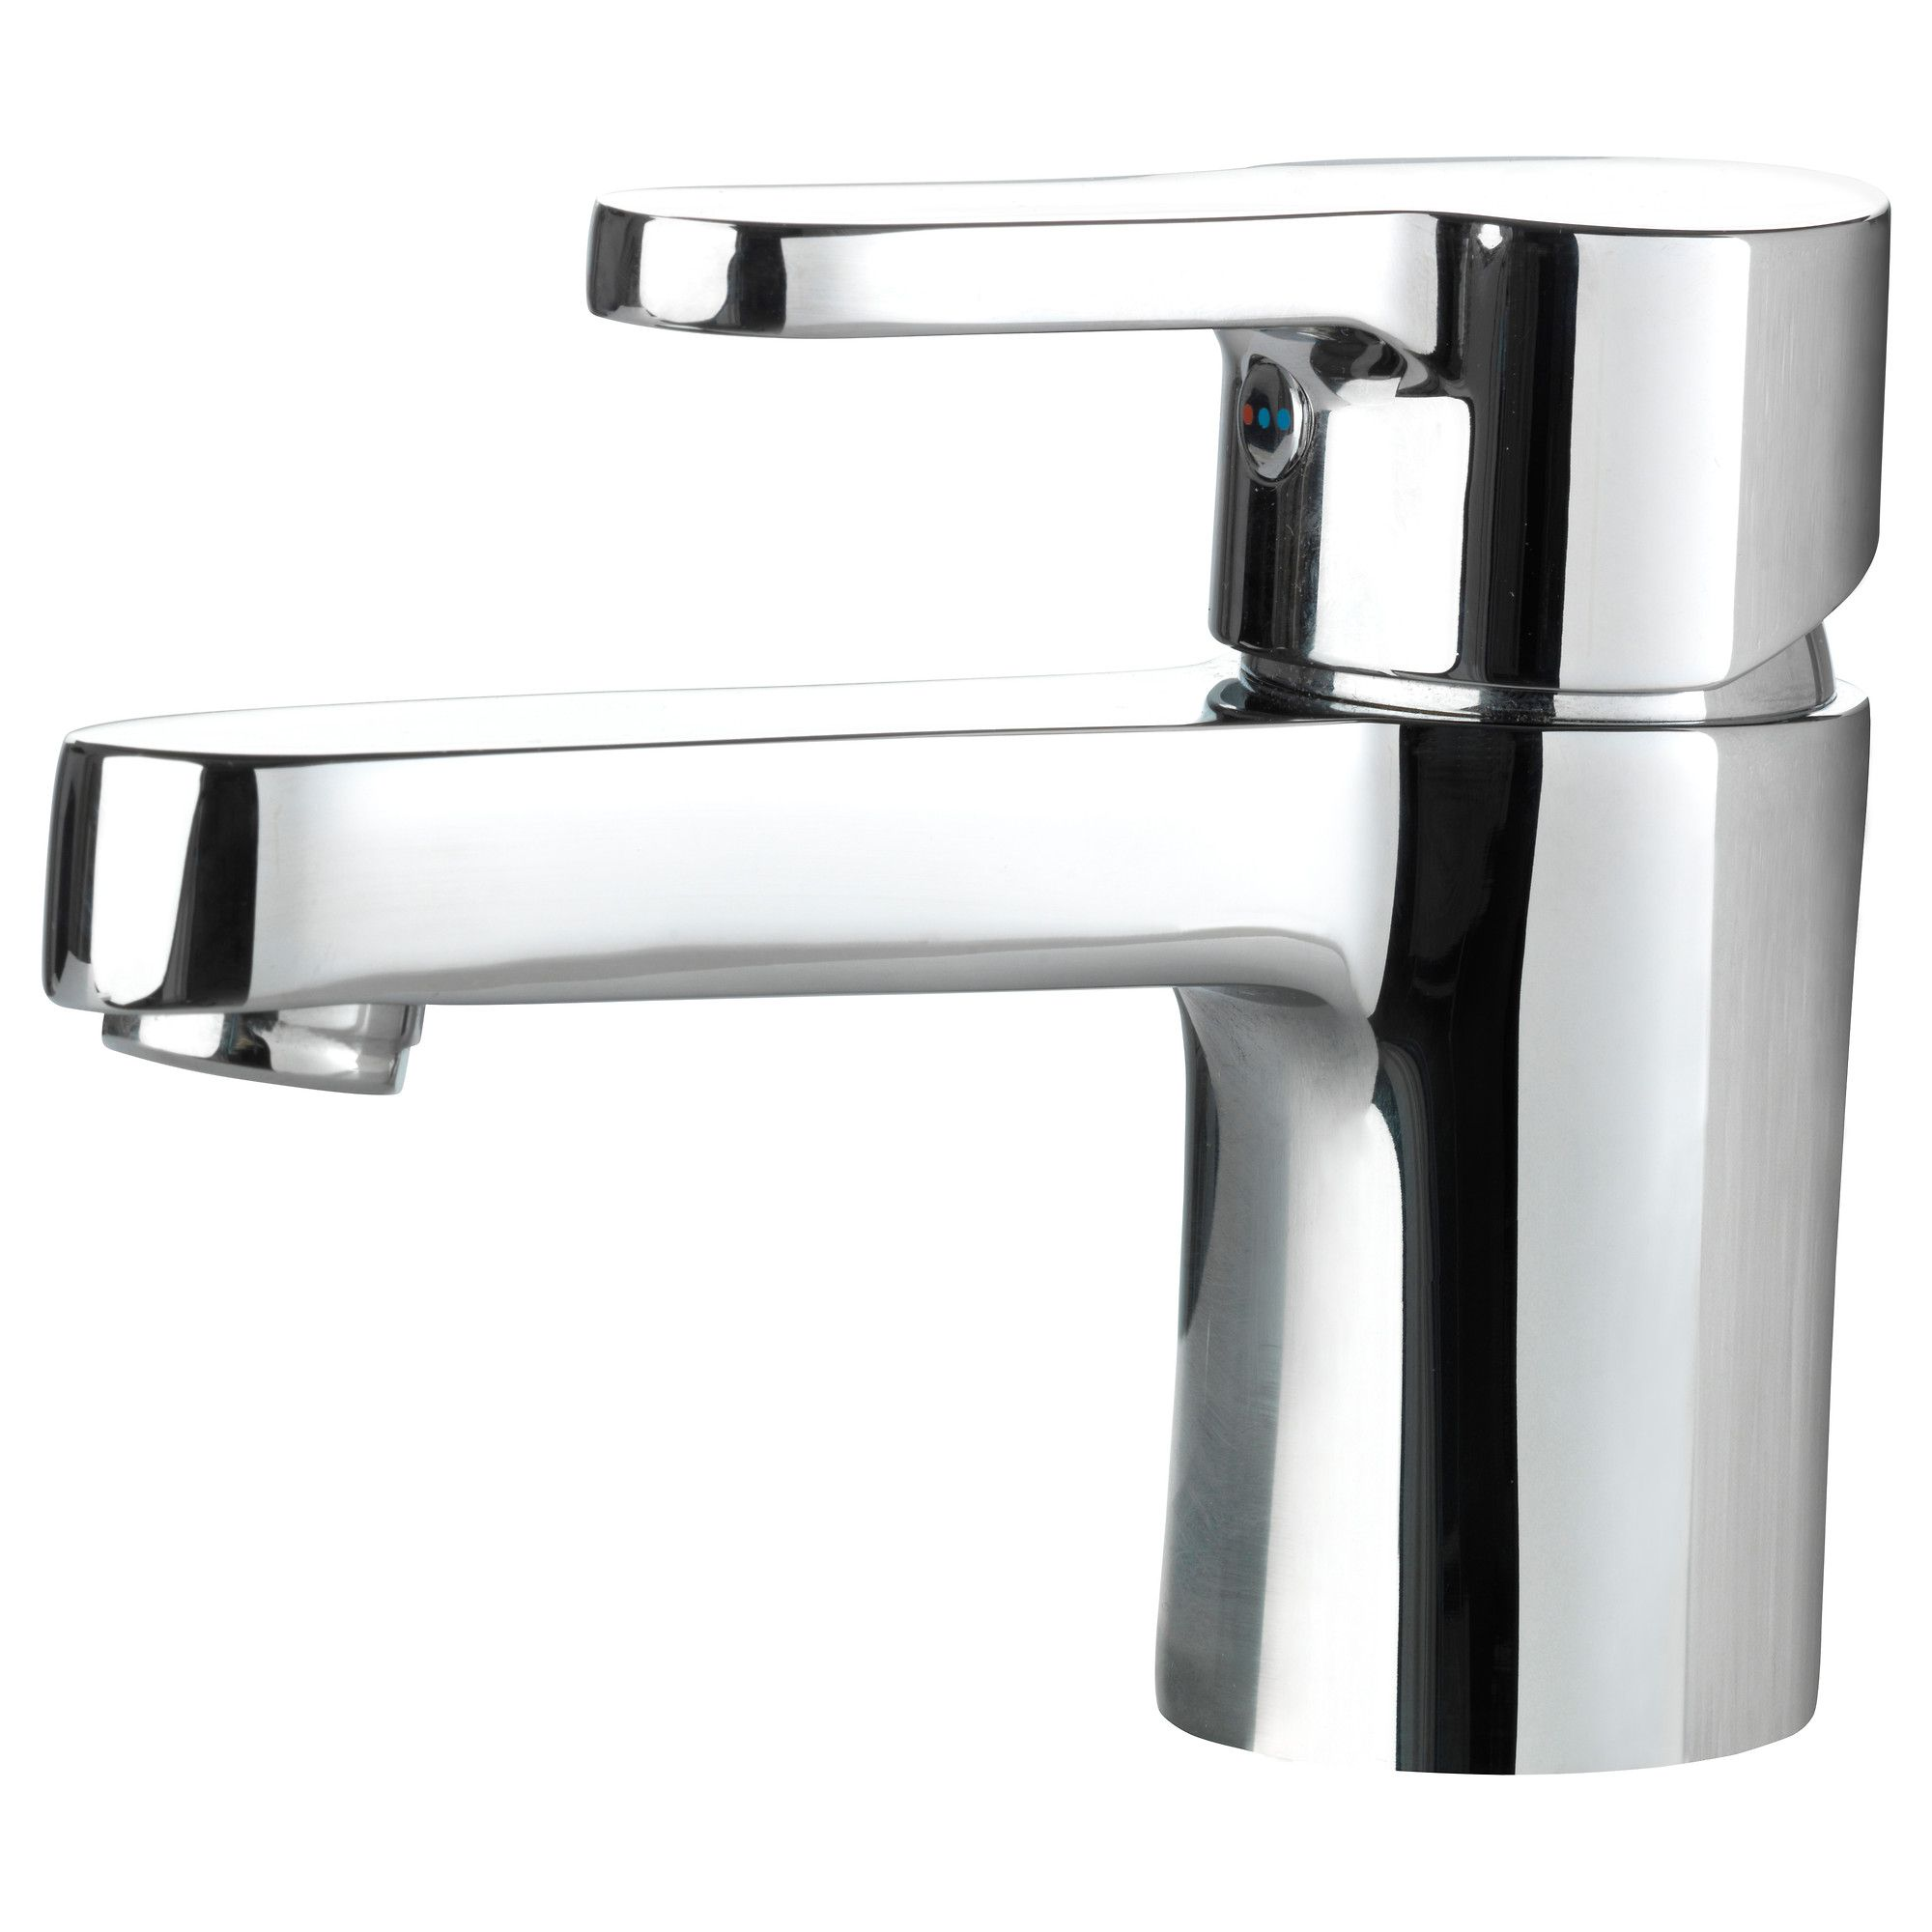 ensen bath faucet with strainer, chrome plated | faucet, bath and